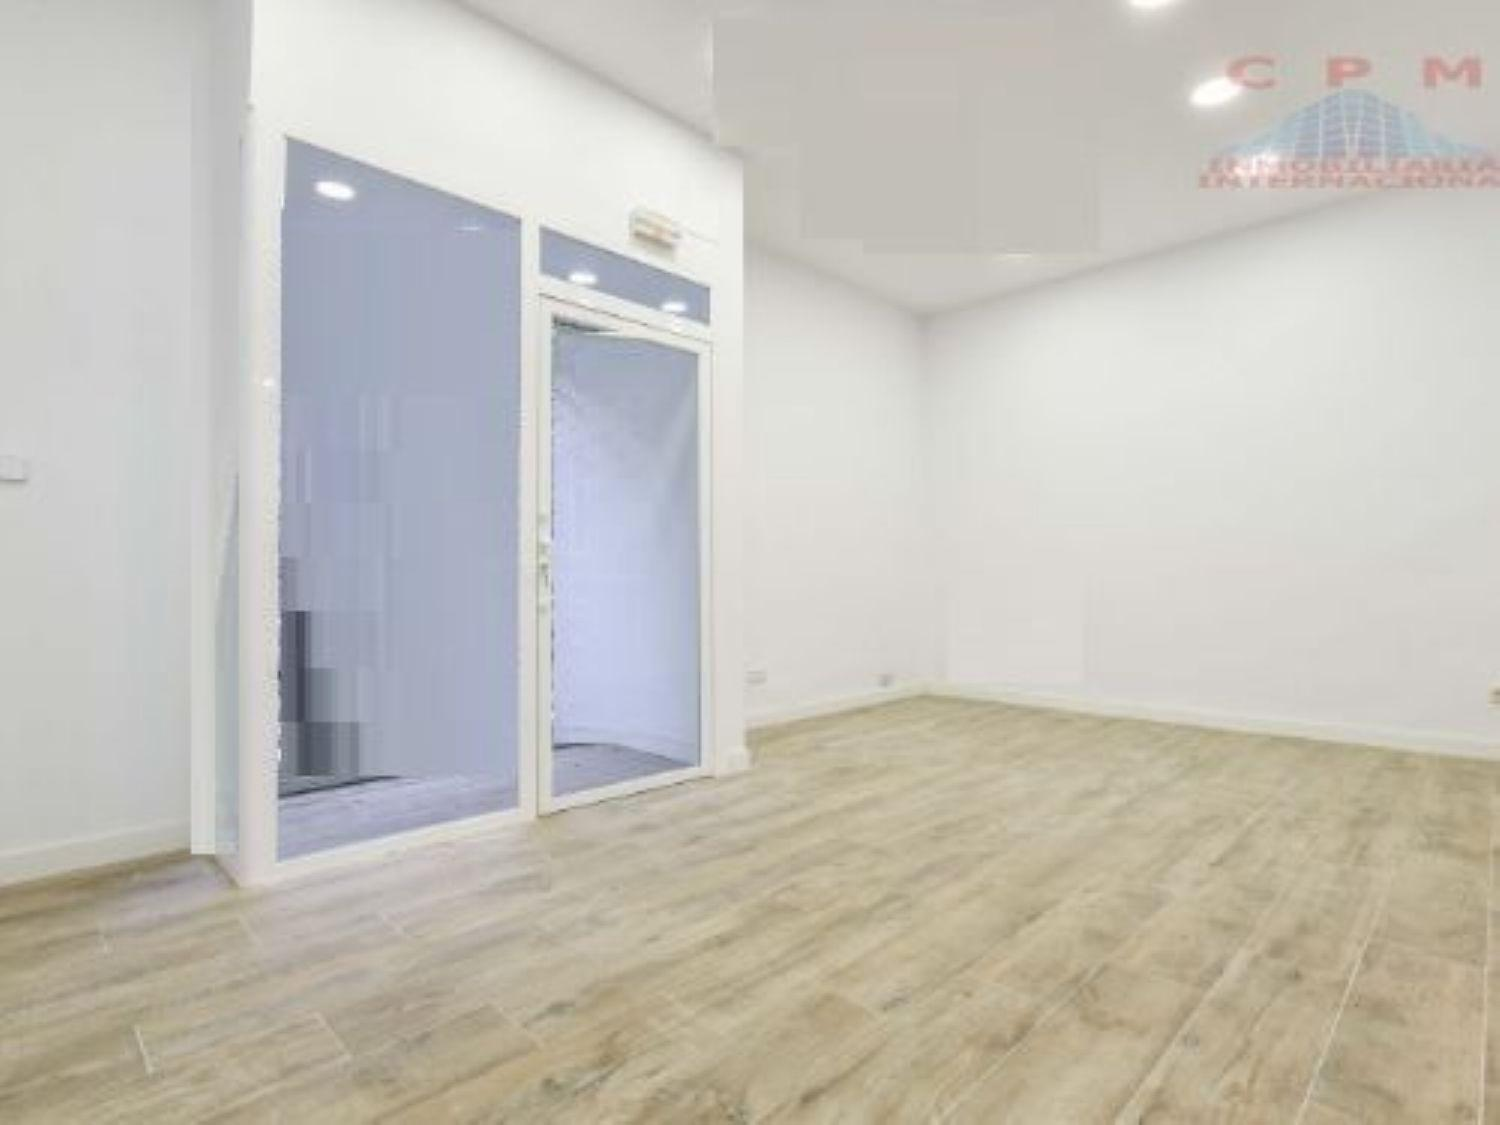 Local Comercial en Venta Goya, Madrid